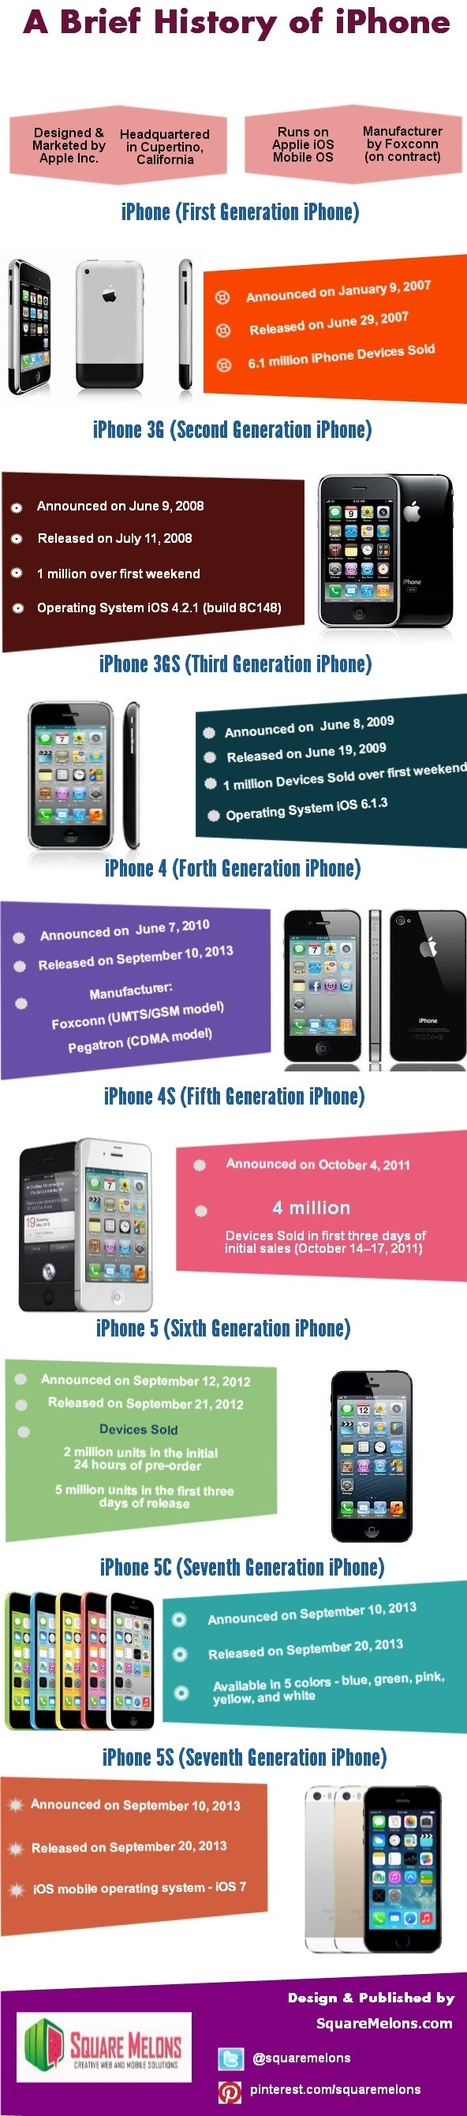 A brief History of the iPhone | Infographic | Web Design, Web Development , SEO, Mobile App Topics | Scoop.it